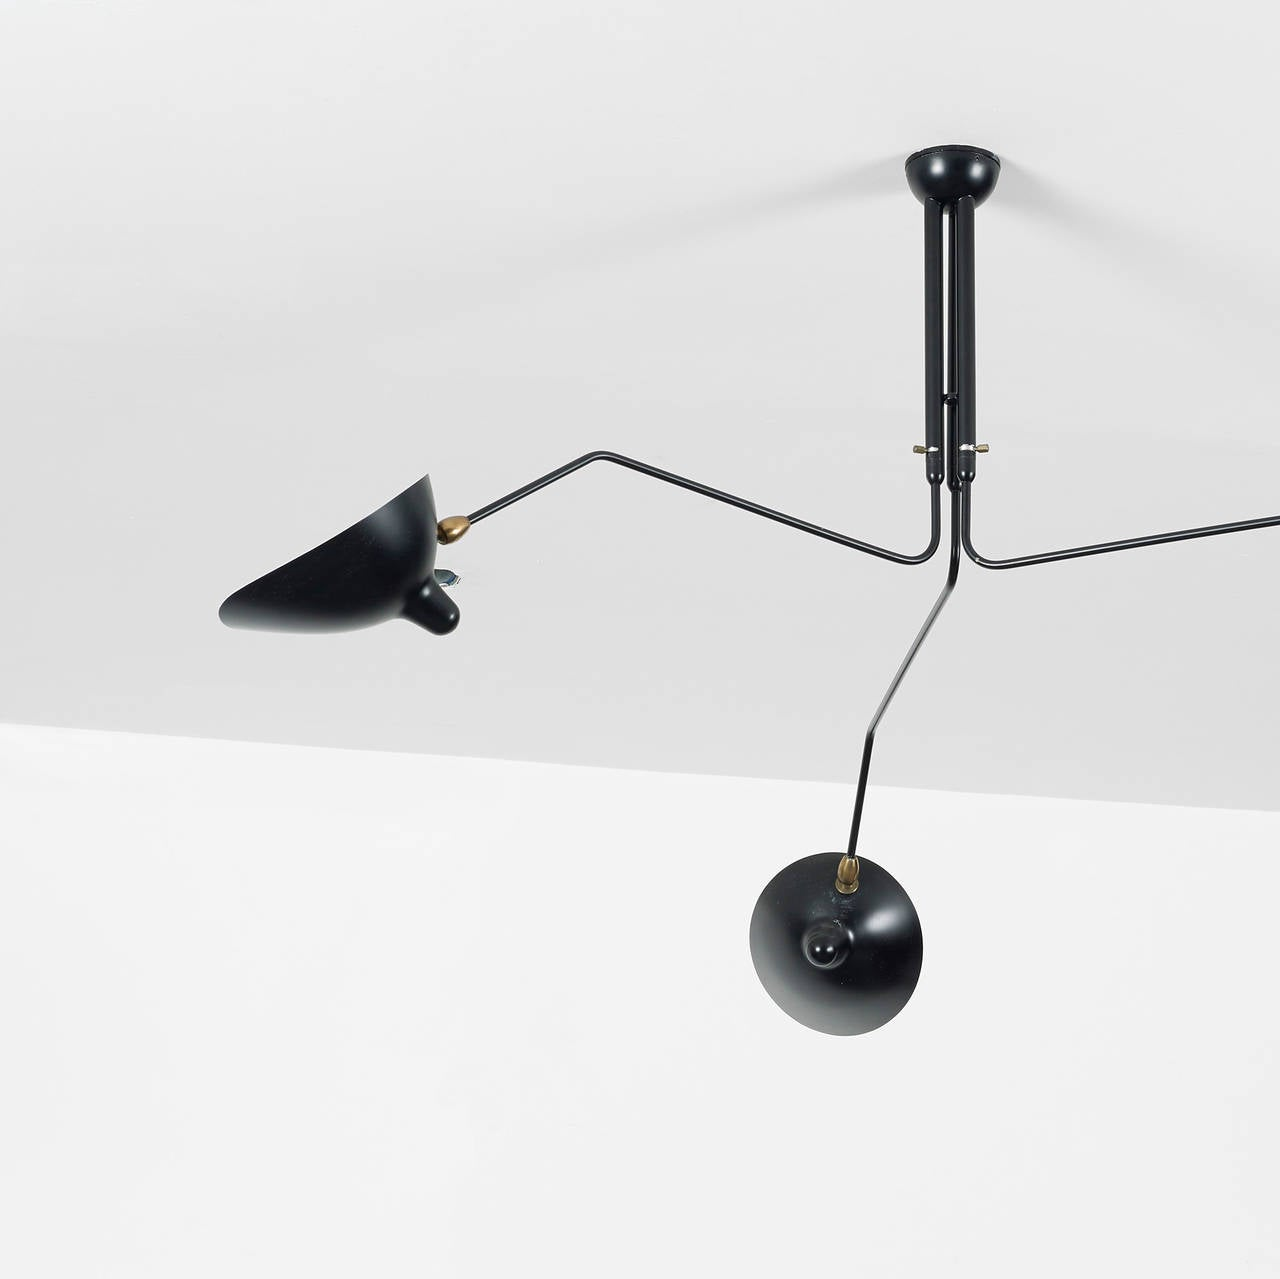 suspension trois bras pivotantsa trois bras by serge mouille at 1stdibs. Black Bedroom Furniture Sets. Home Design Ideas